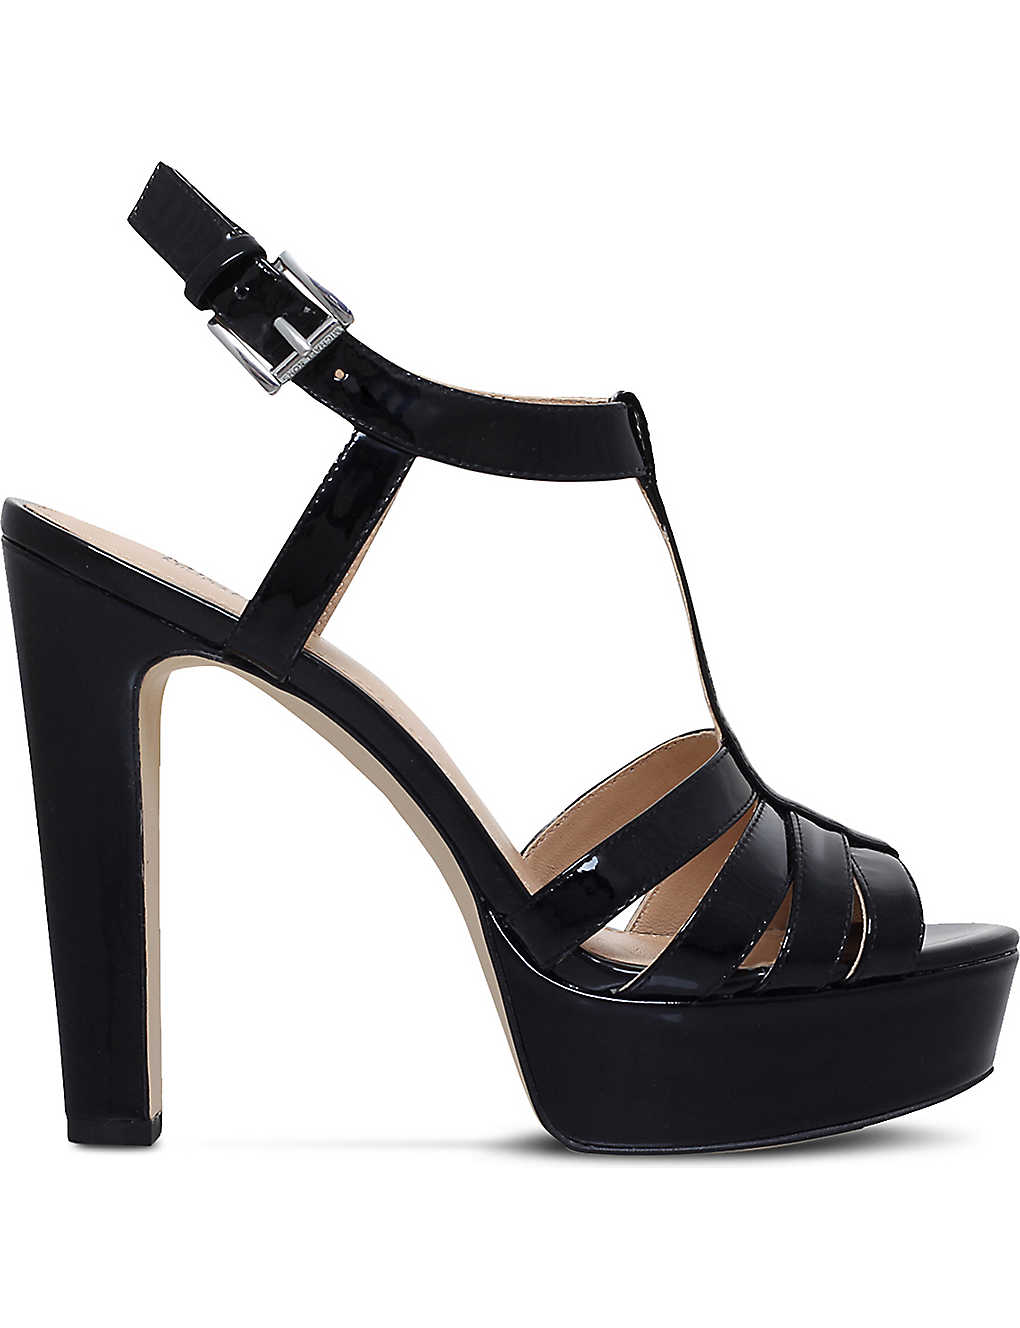 185363ad2f2 MICHAEL MICHAEL KORS - Catalina patent leather platform sandals ...